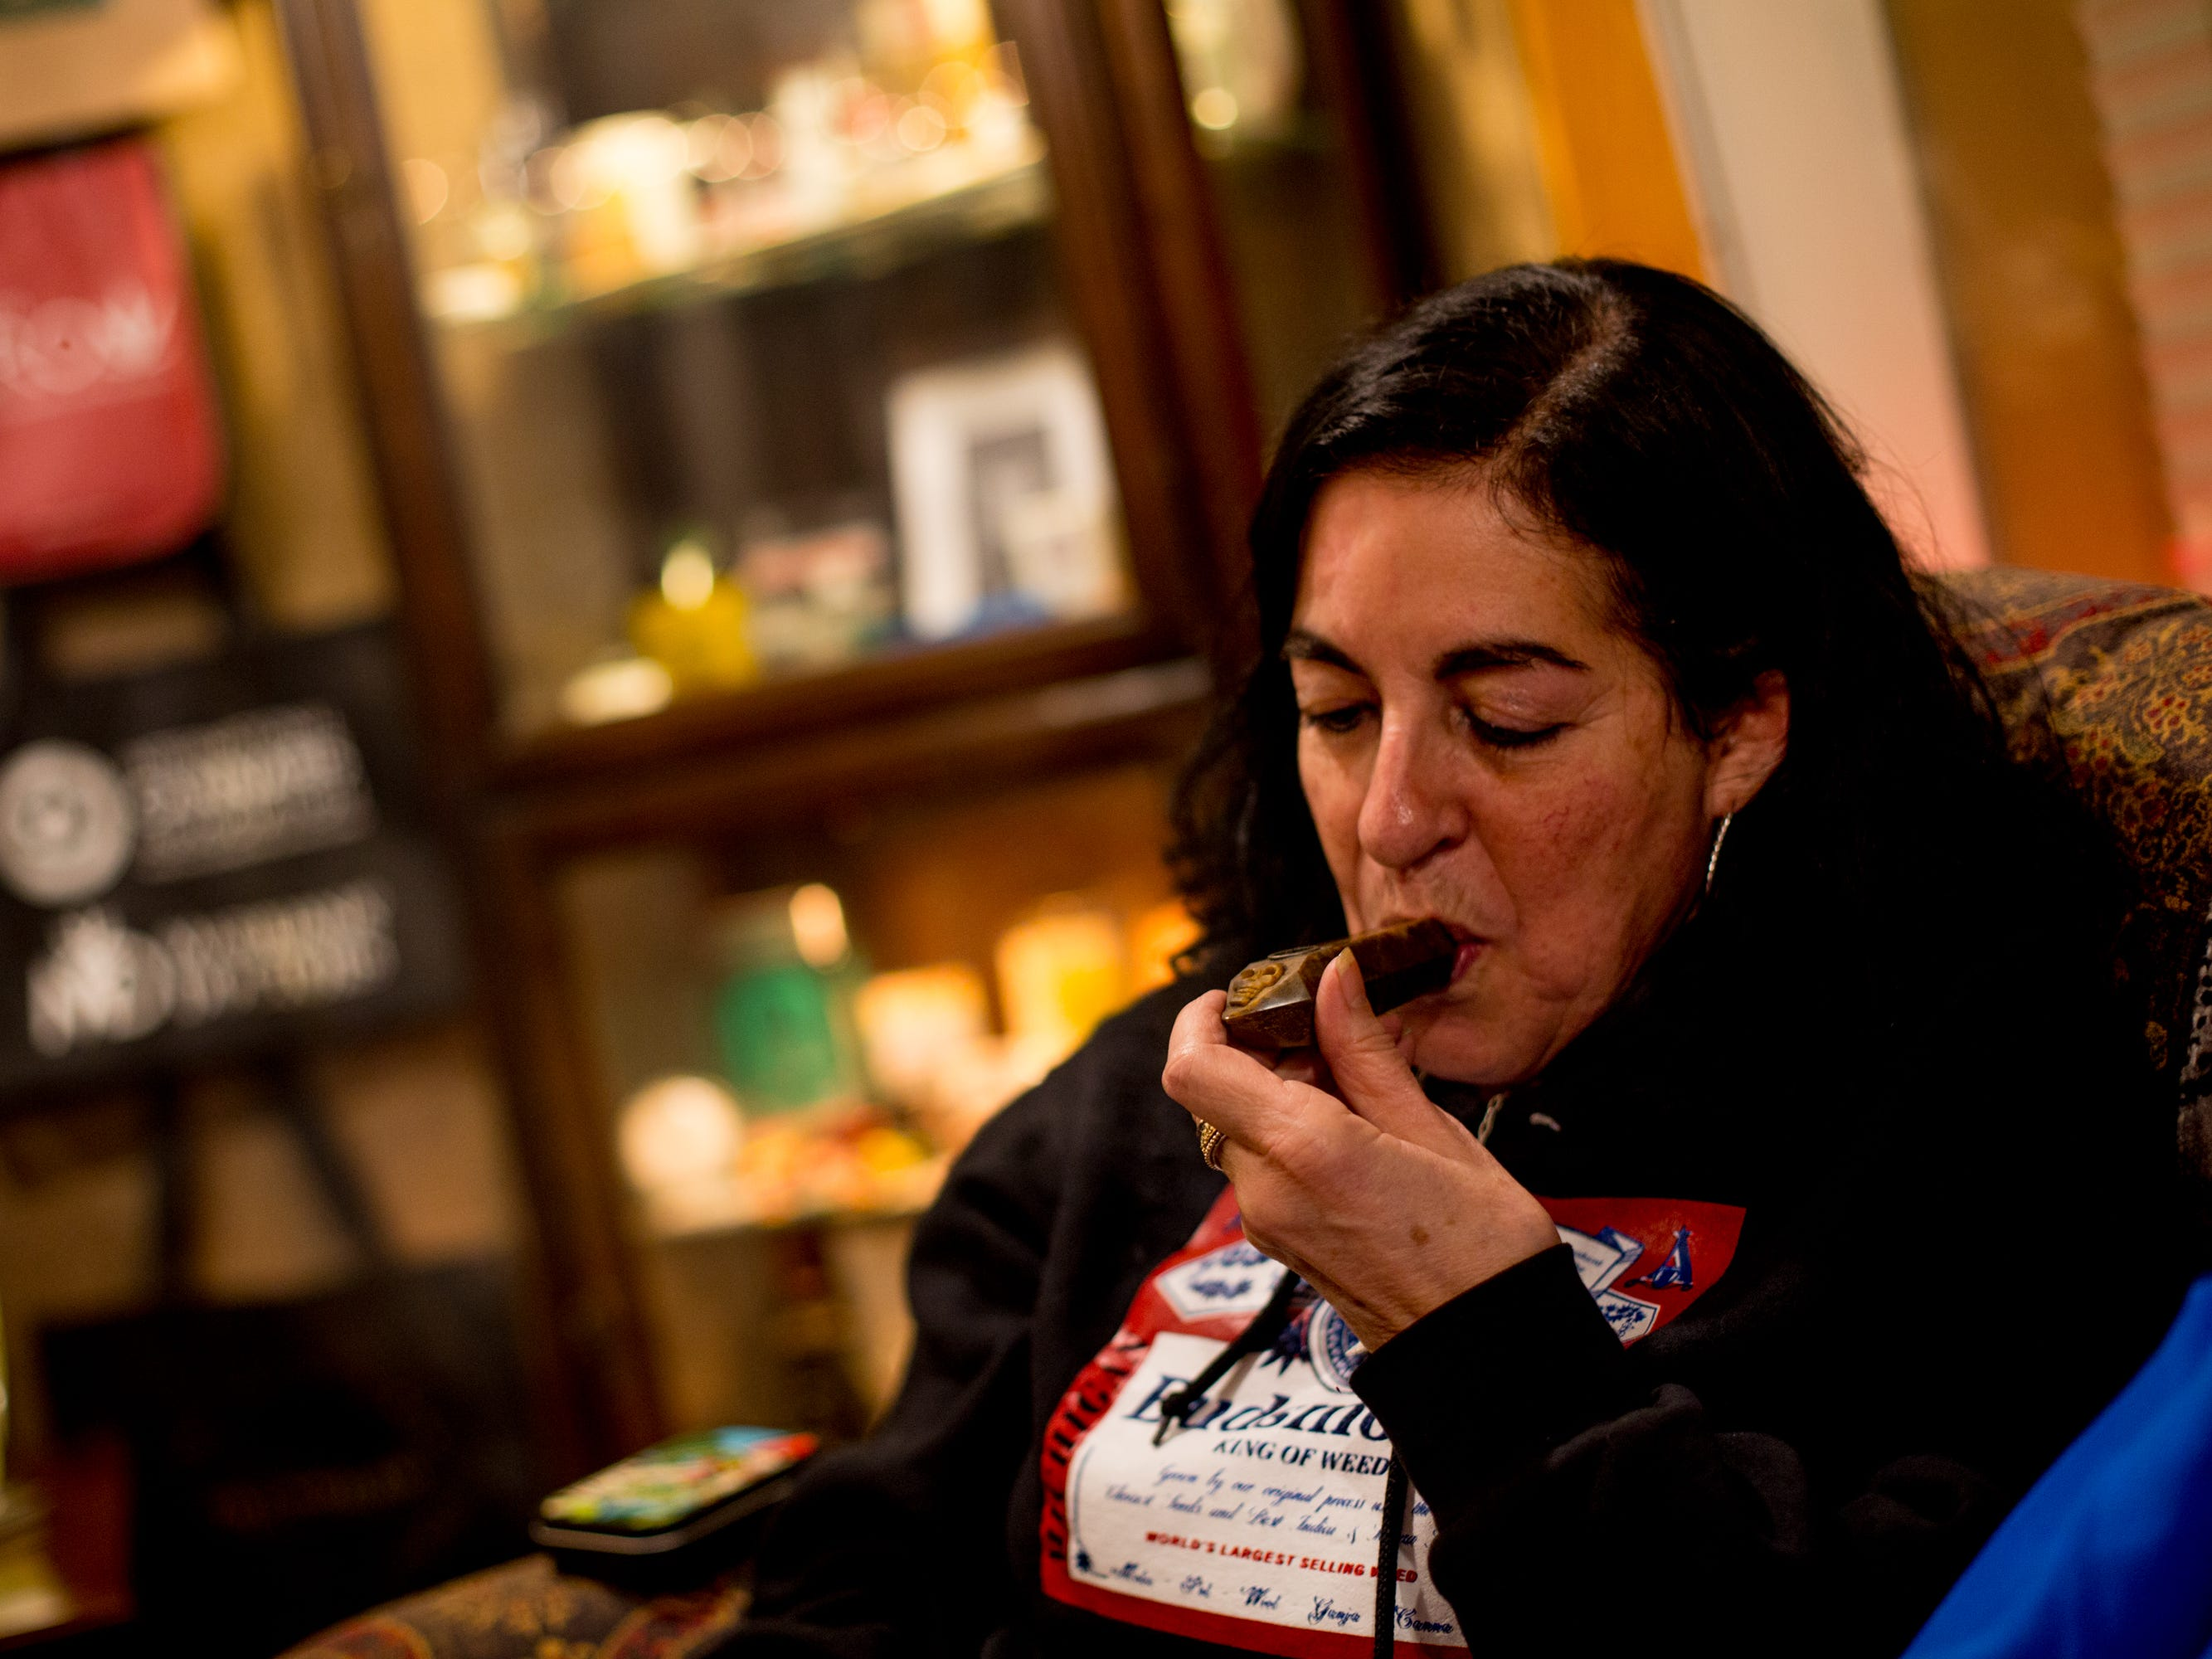 Debra Young, 61, of Ferndale smokes pot at the party.